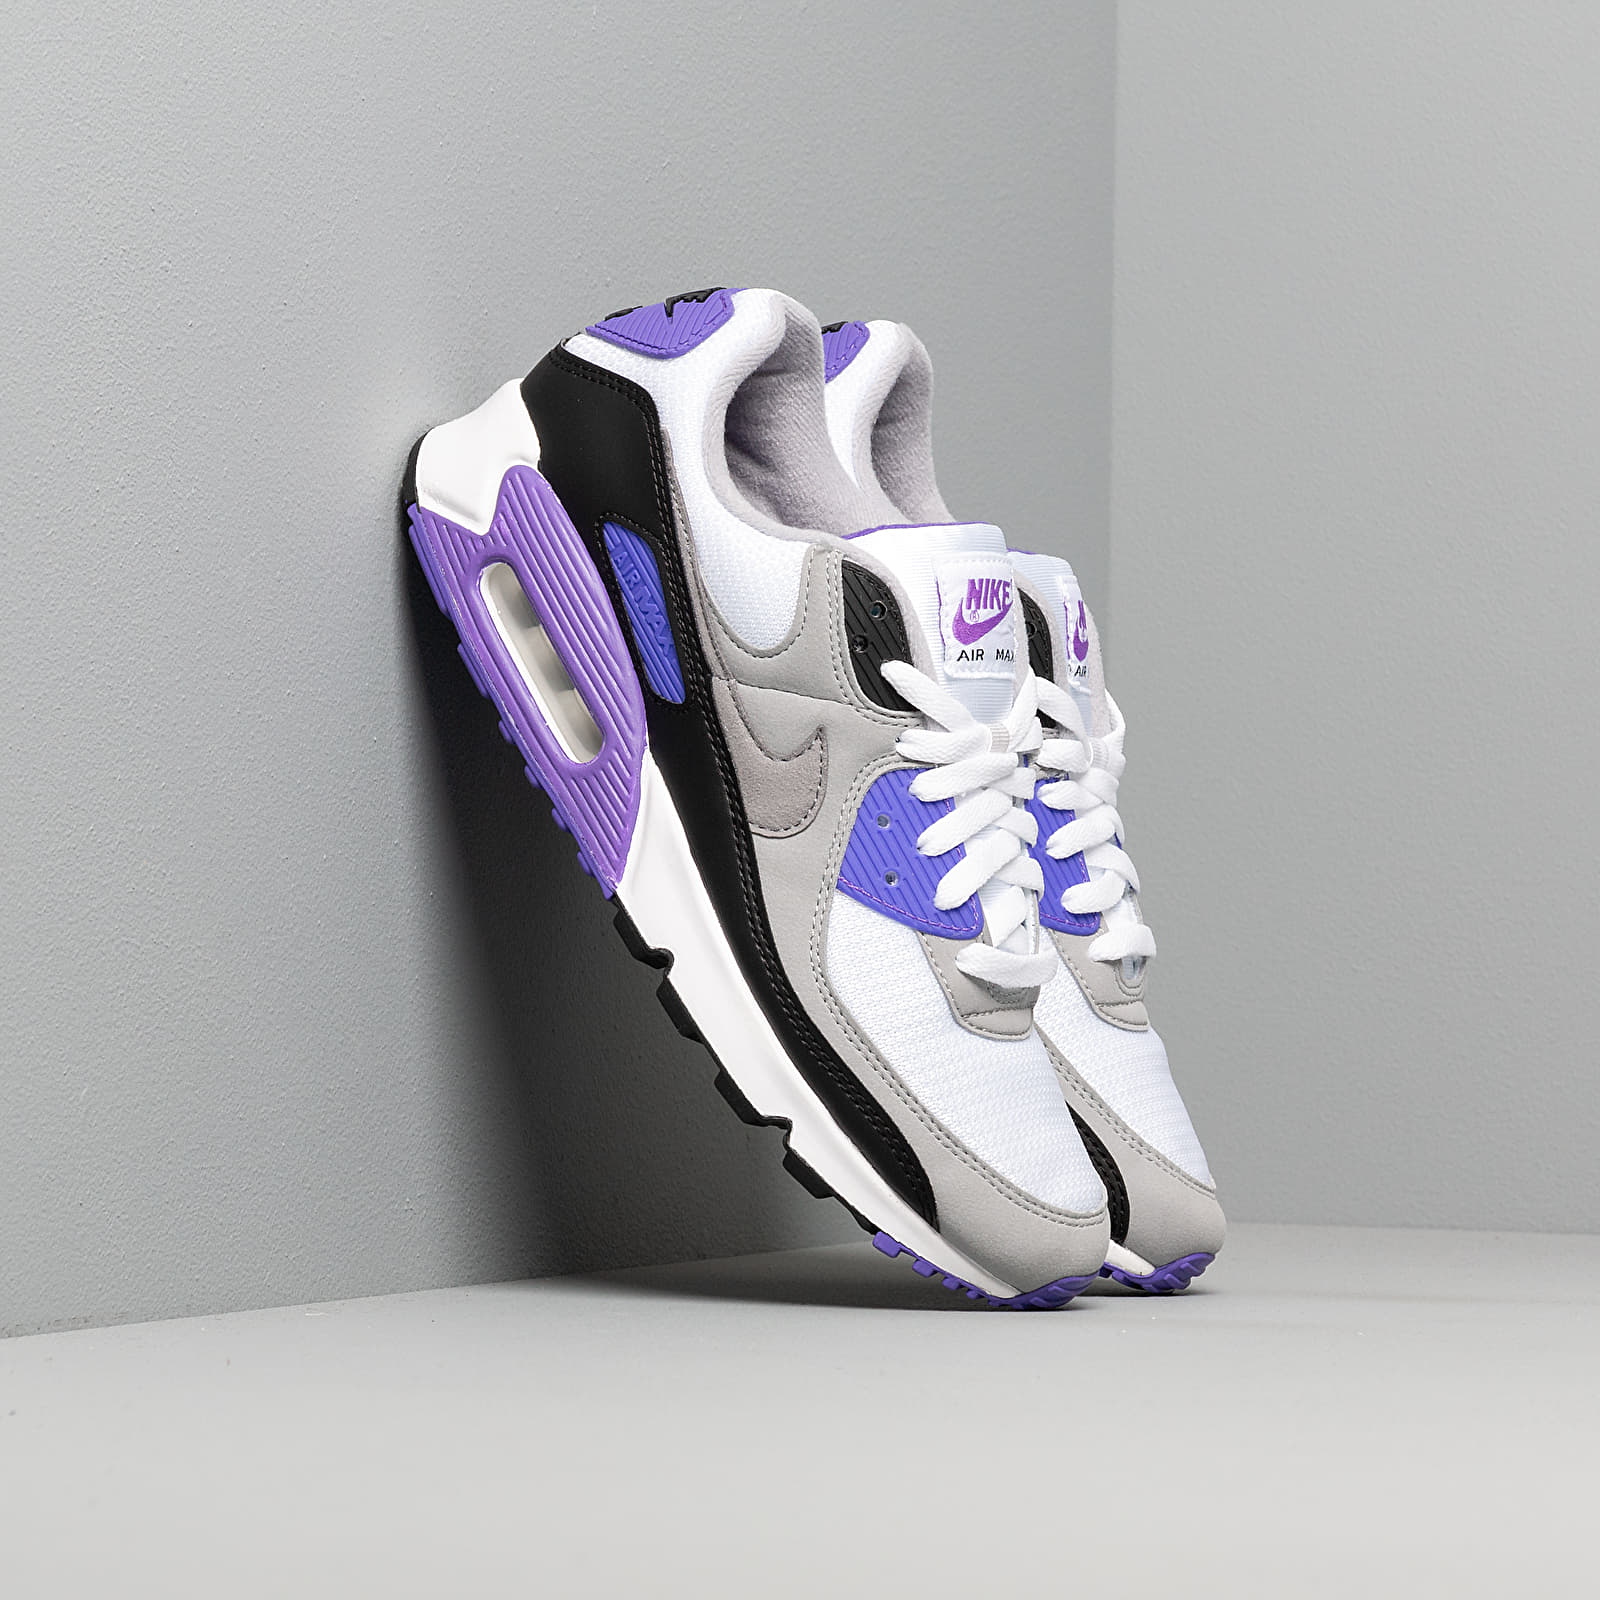 Zapatillas Hombre Nike Air Max 90 White/ Particle Grey-Hyper Grape-Black